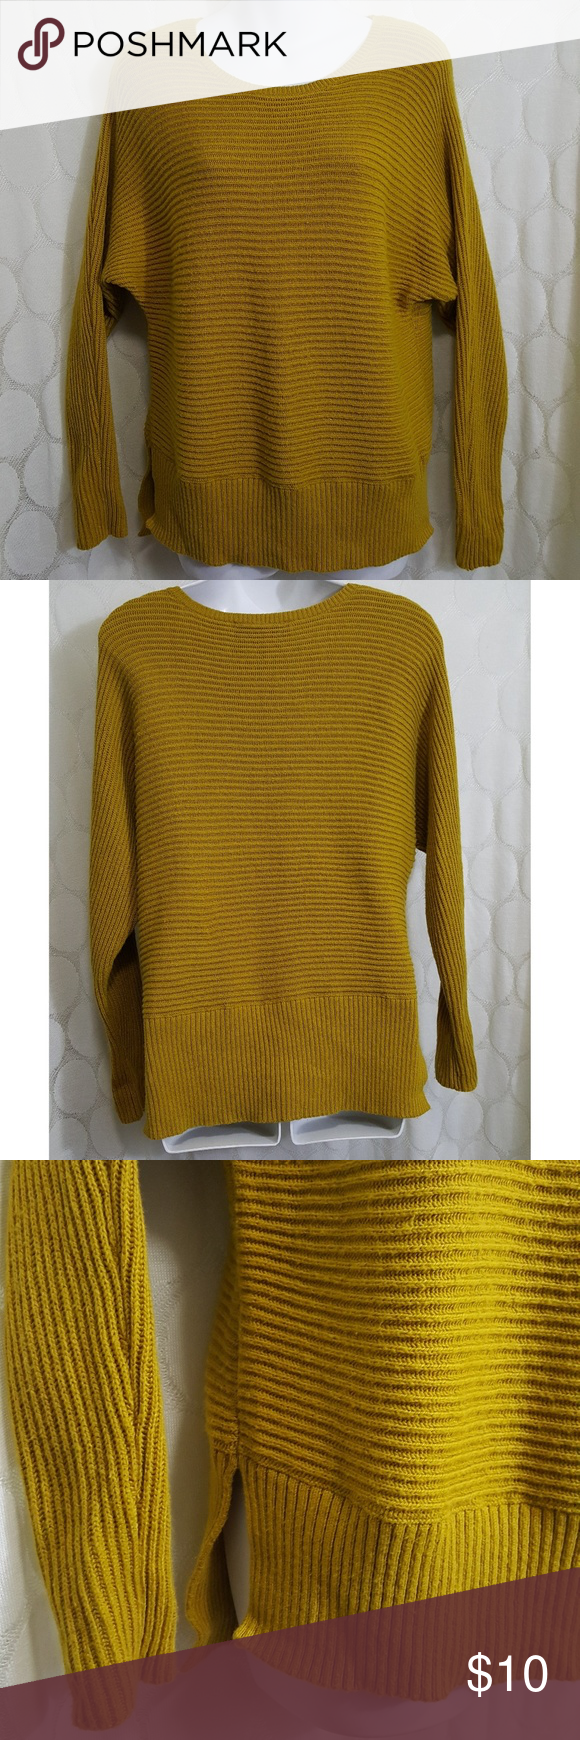 Ann Taylor Loft Yellow Ribbed Sweater | Ann taylor loft, Lofts and ...